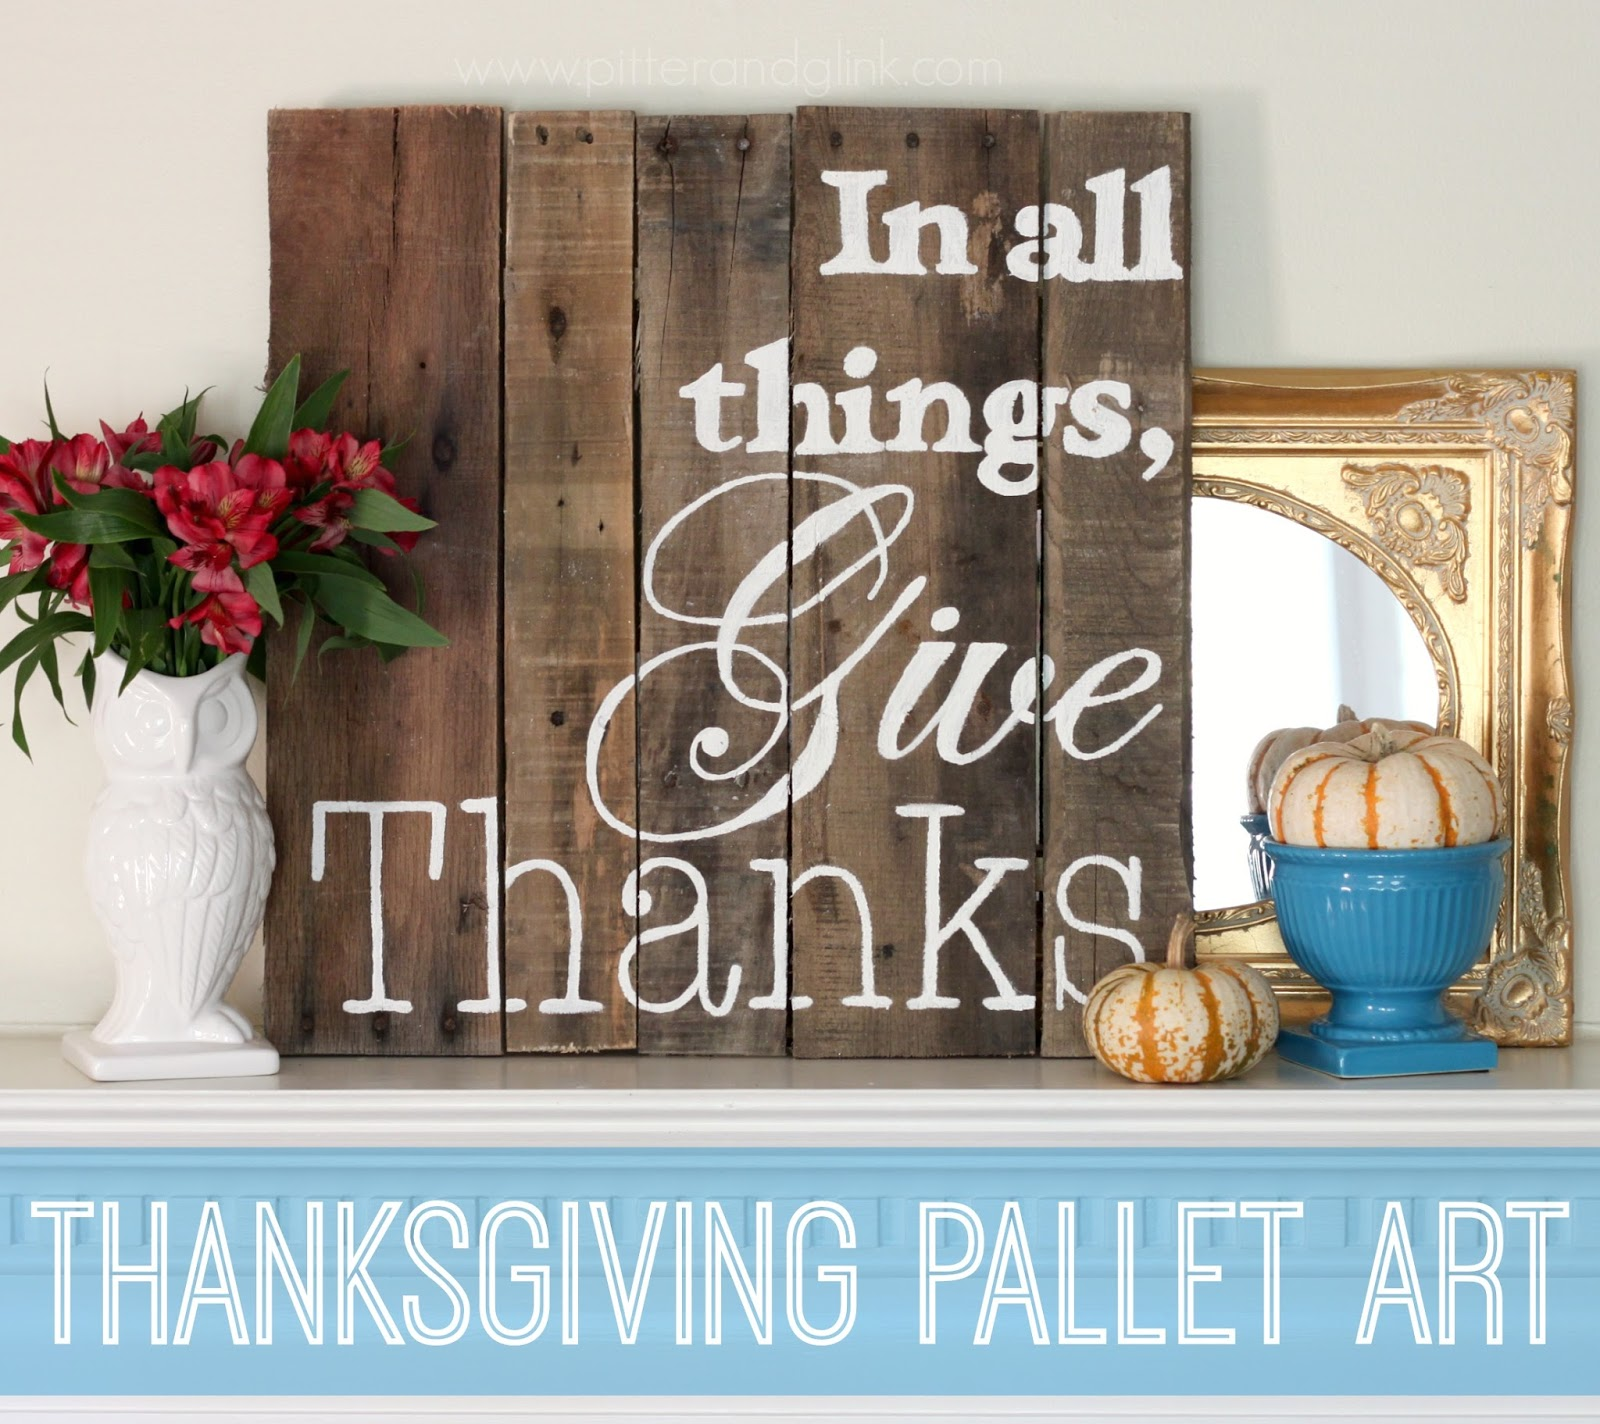 Thanksgiving Pallet Art www.pitterandglink.com